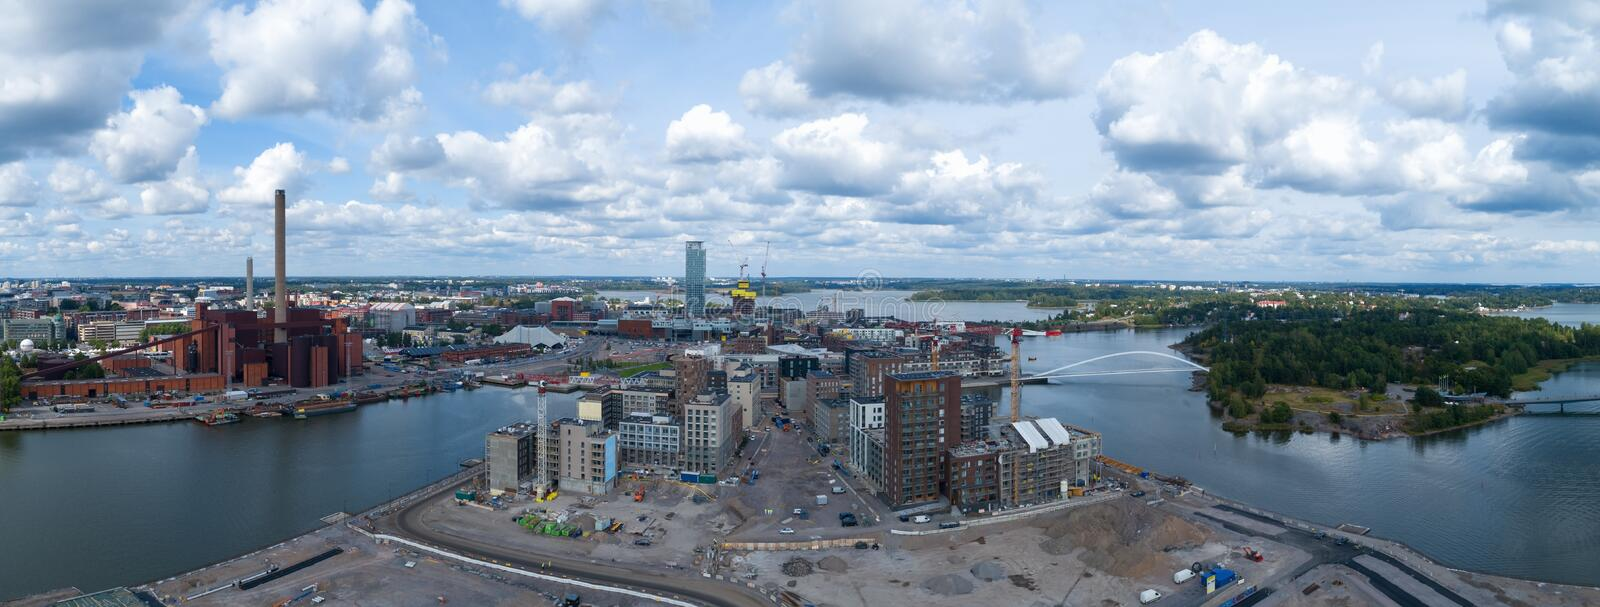 Aerial panorama of new modern buildings under construction in Helsinki city at summer. Beautiful blue sky with clouds. Sompasaari stock image